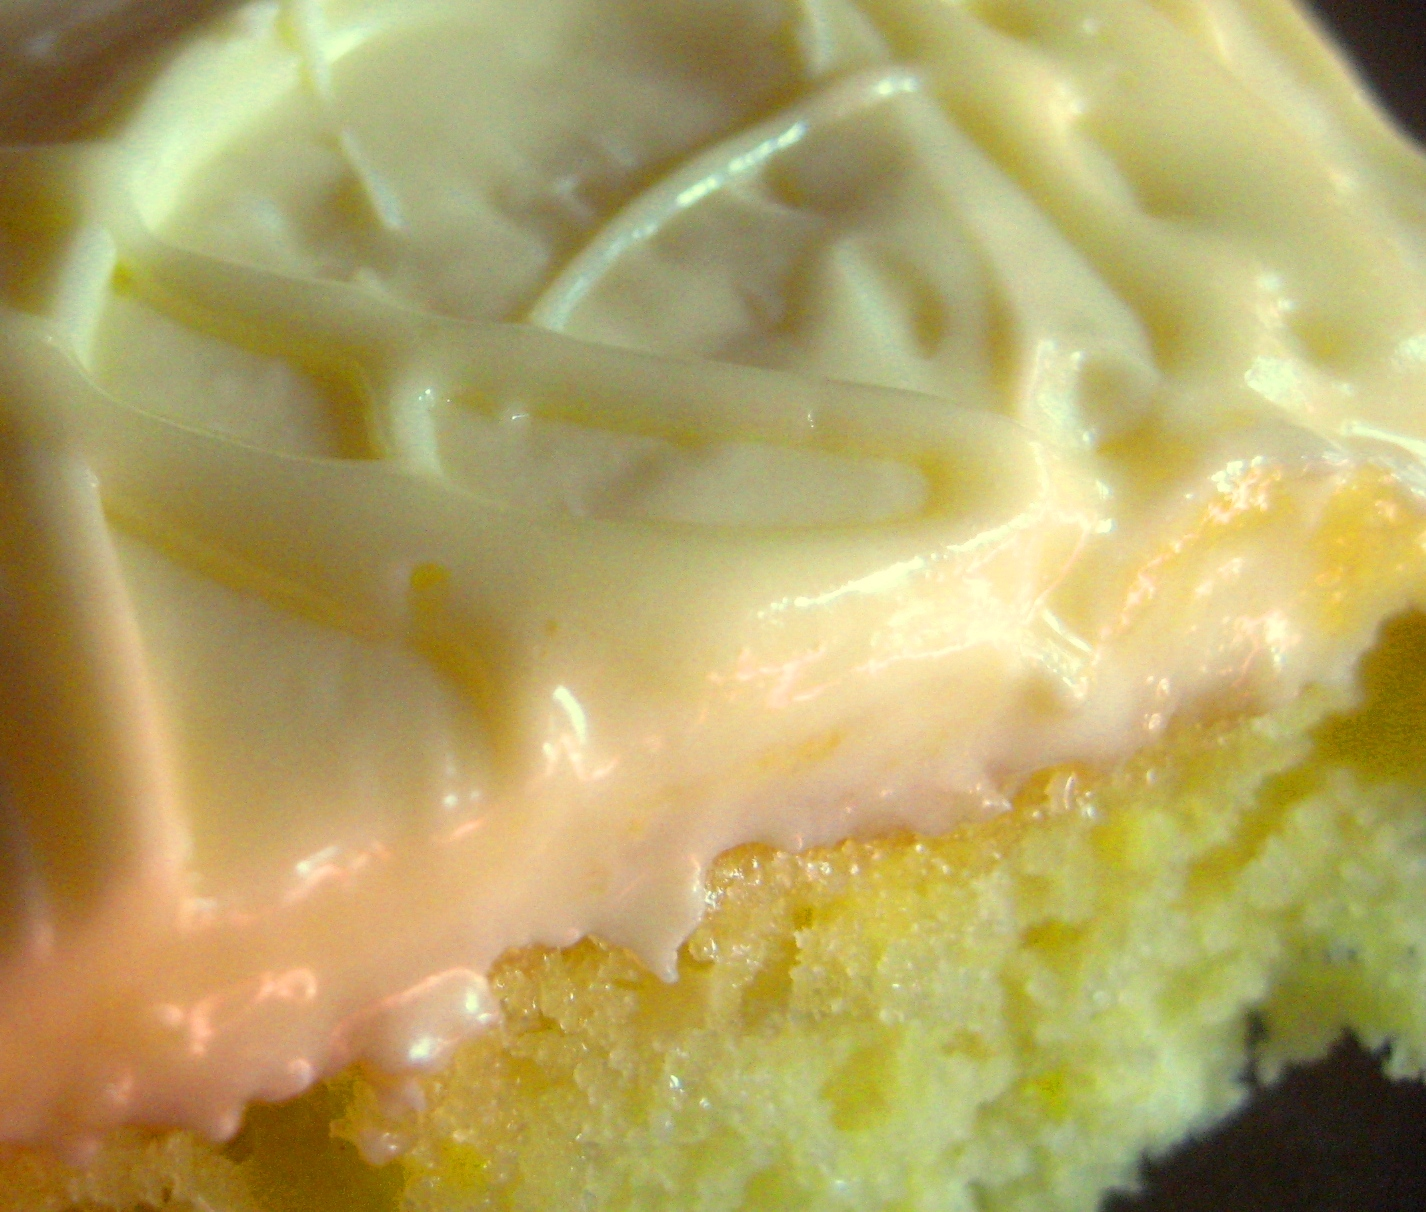 My Homemade Life: LEMON DROP Cake Plus a Little Frosting ...